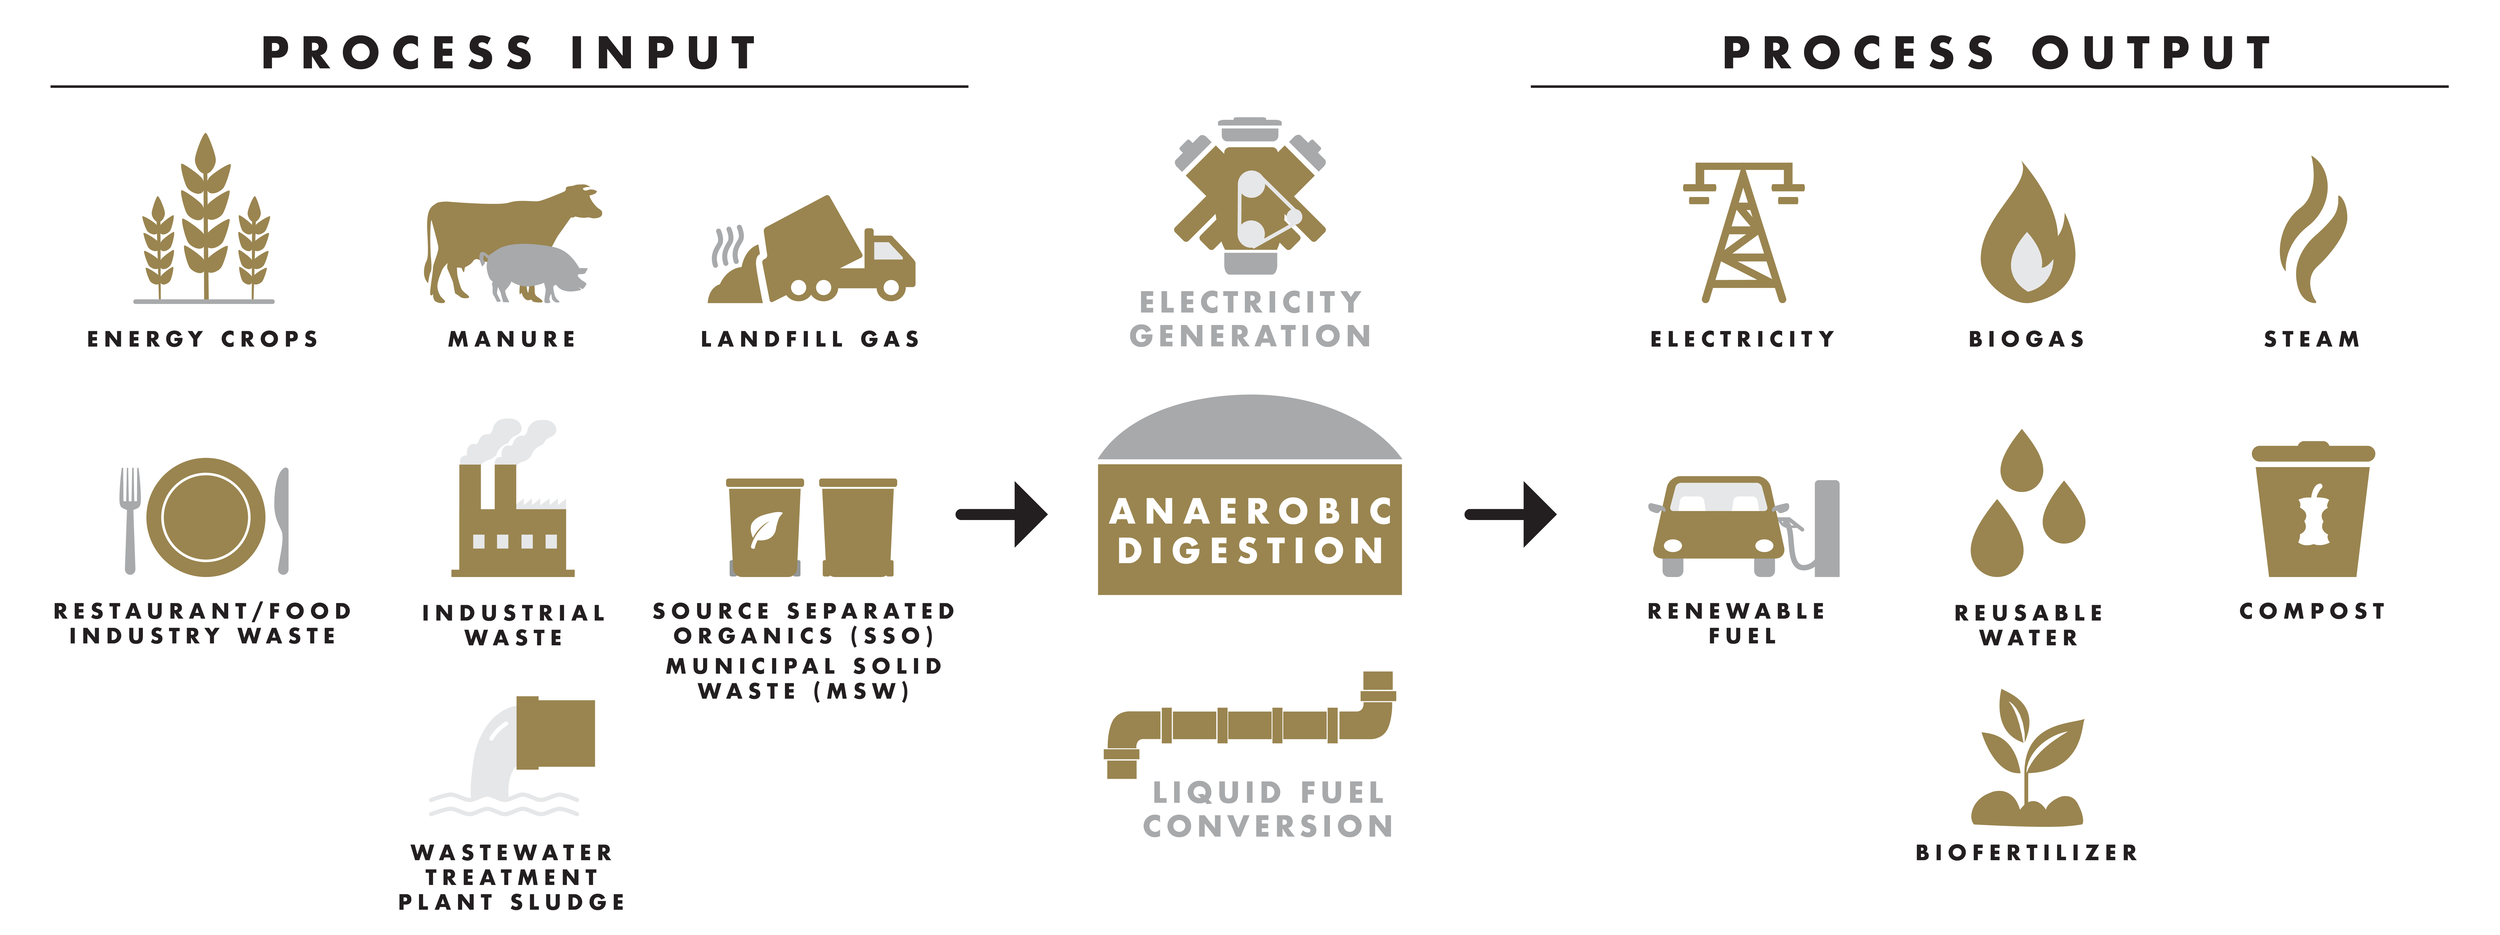 AnaerobicDigestion-01-01.png